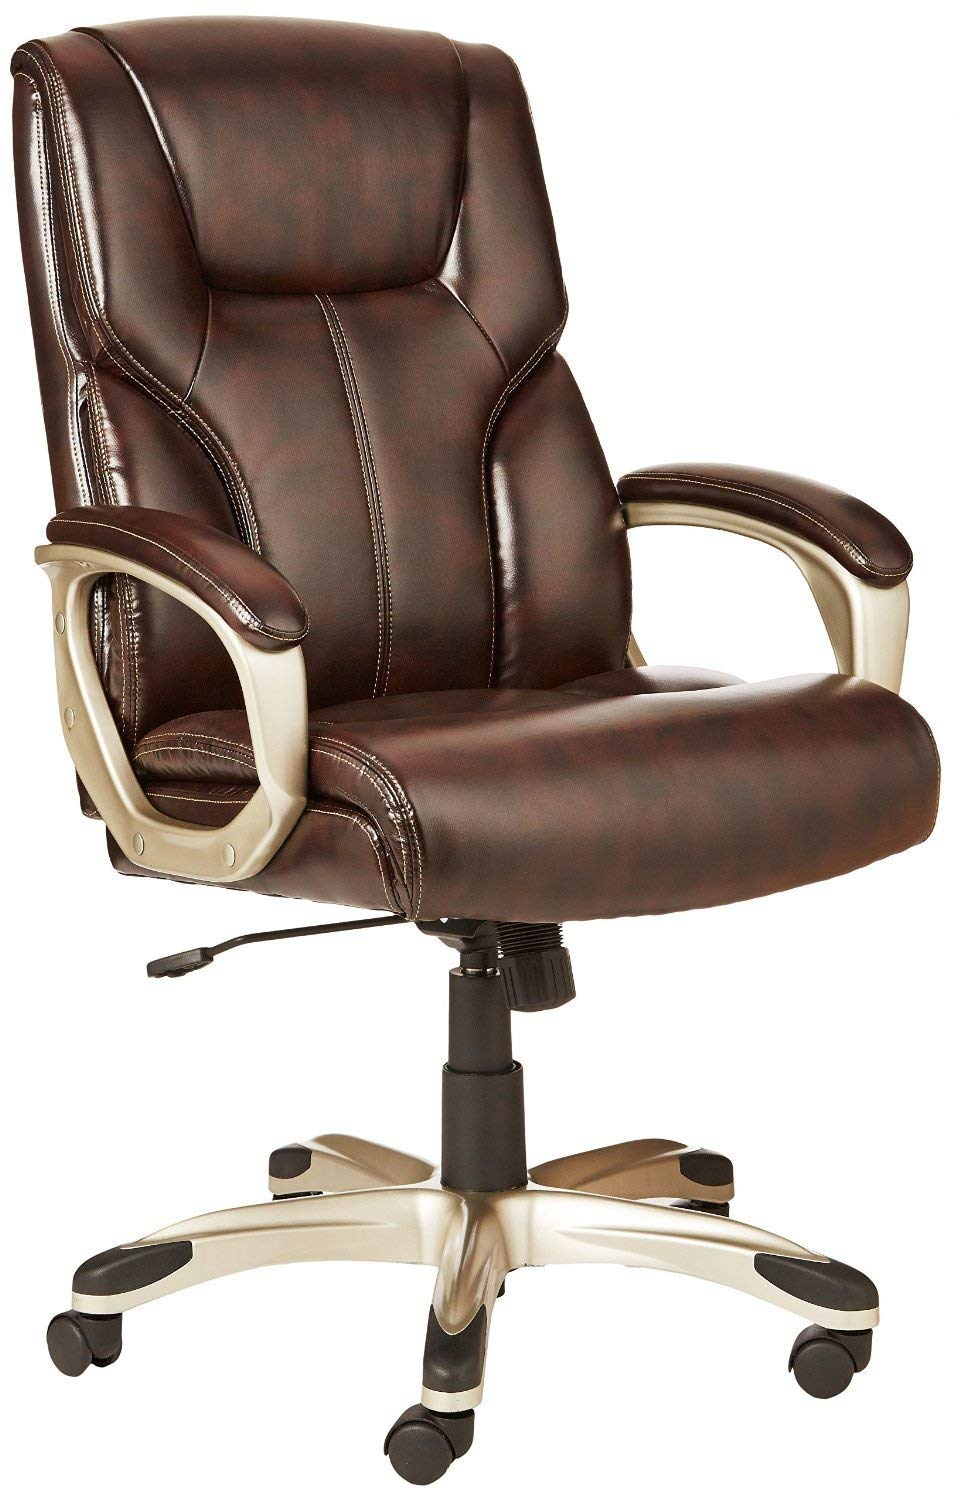 AmazonBasics High-Back Executive Swivel Chair